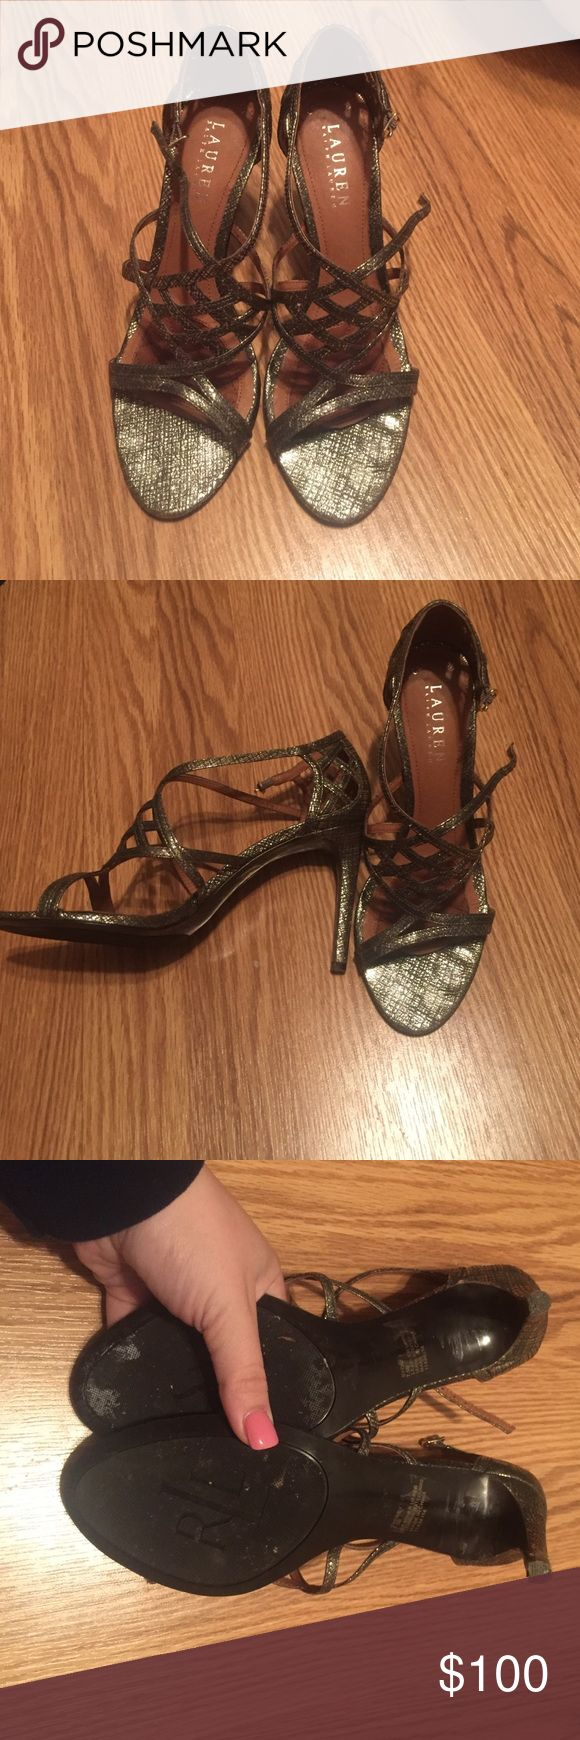 Lauren Ralph Lauren Shoes 7.5 worn once ⚜️I love receiving offers through the offer button!⚜️ Good condition, as seen in pictures! Fast same or next day shipping!📨 Open to offers but I don't negotiate in the comments so please use the offer button😊 Lauren Ralph Lauren Shoes Heels